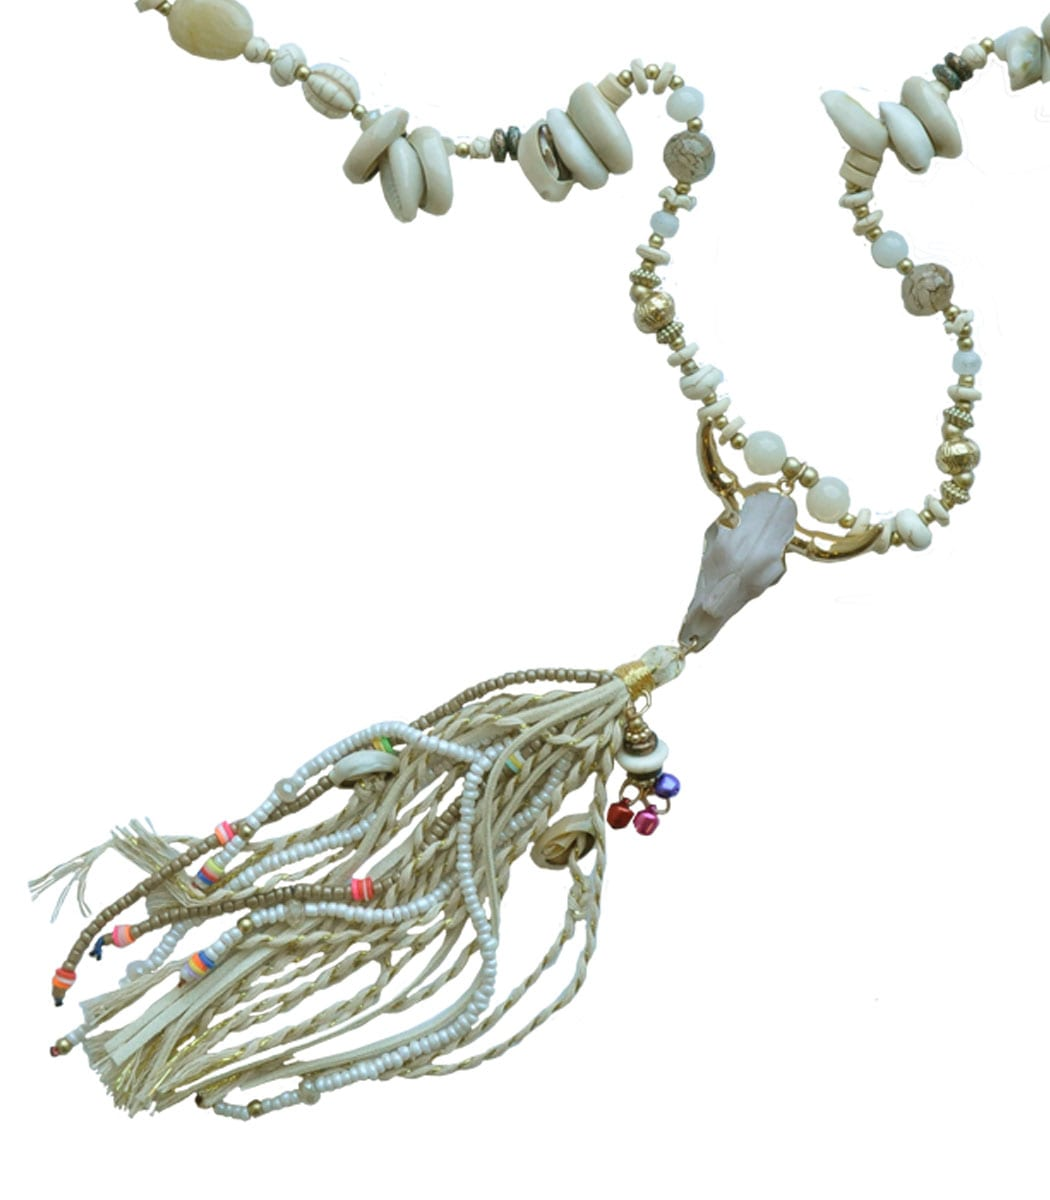 Cow scull shell necklace